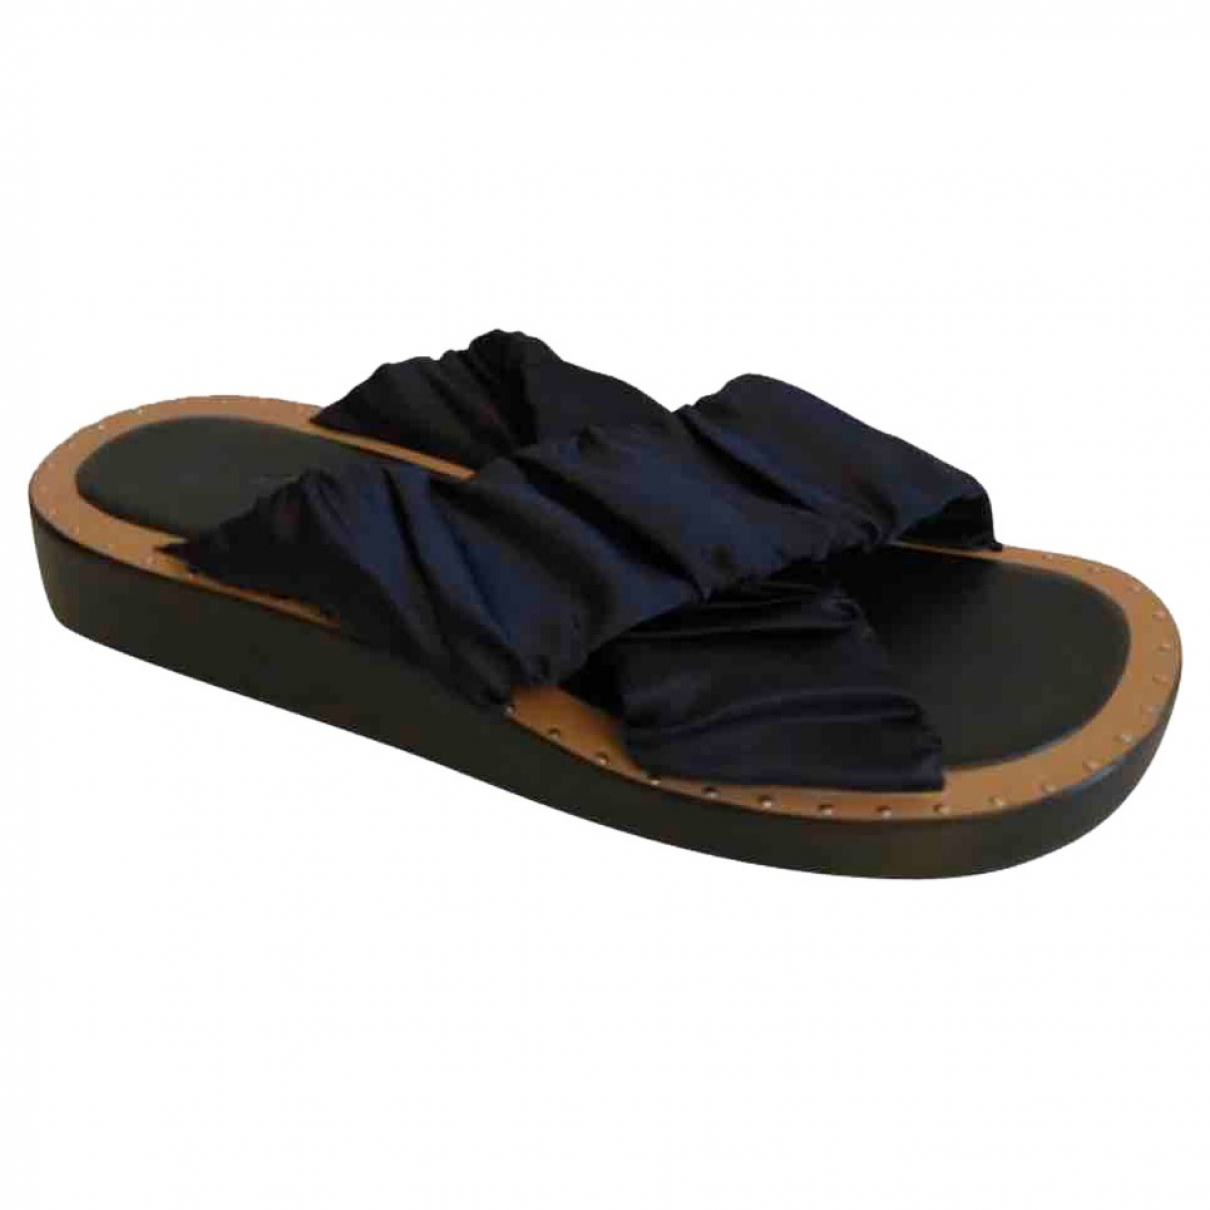 3.1 Phillip Lim \N Navy Leather Sandals for Women 37 EU